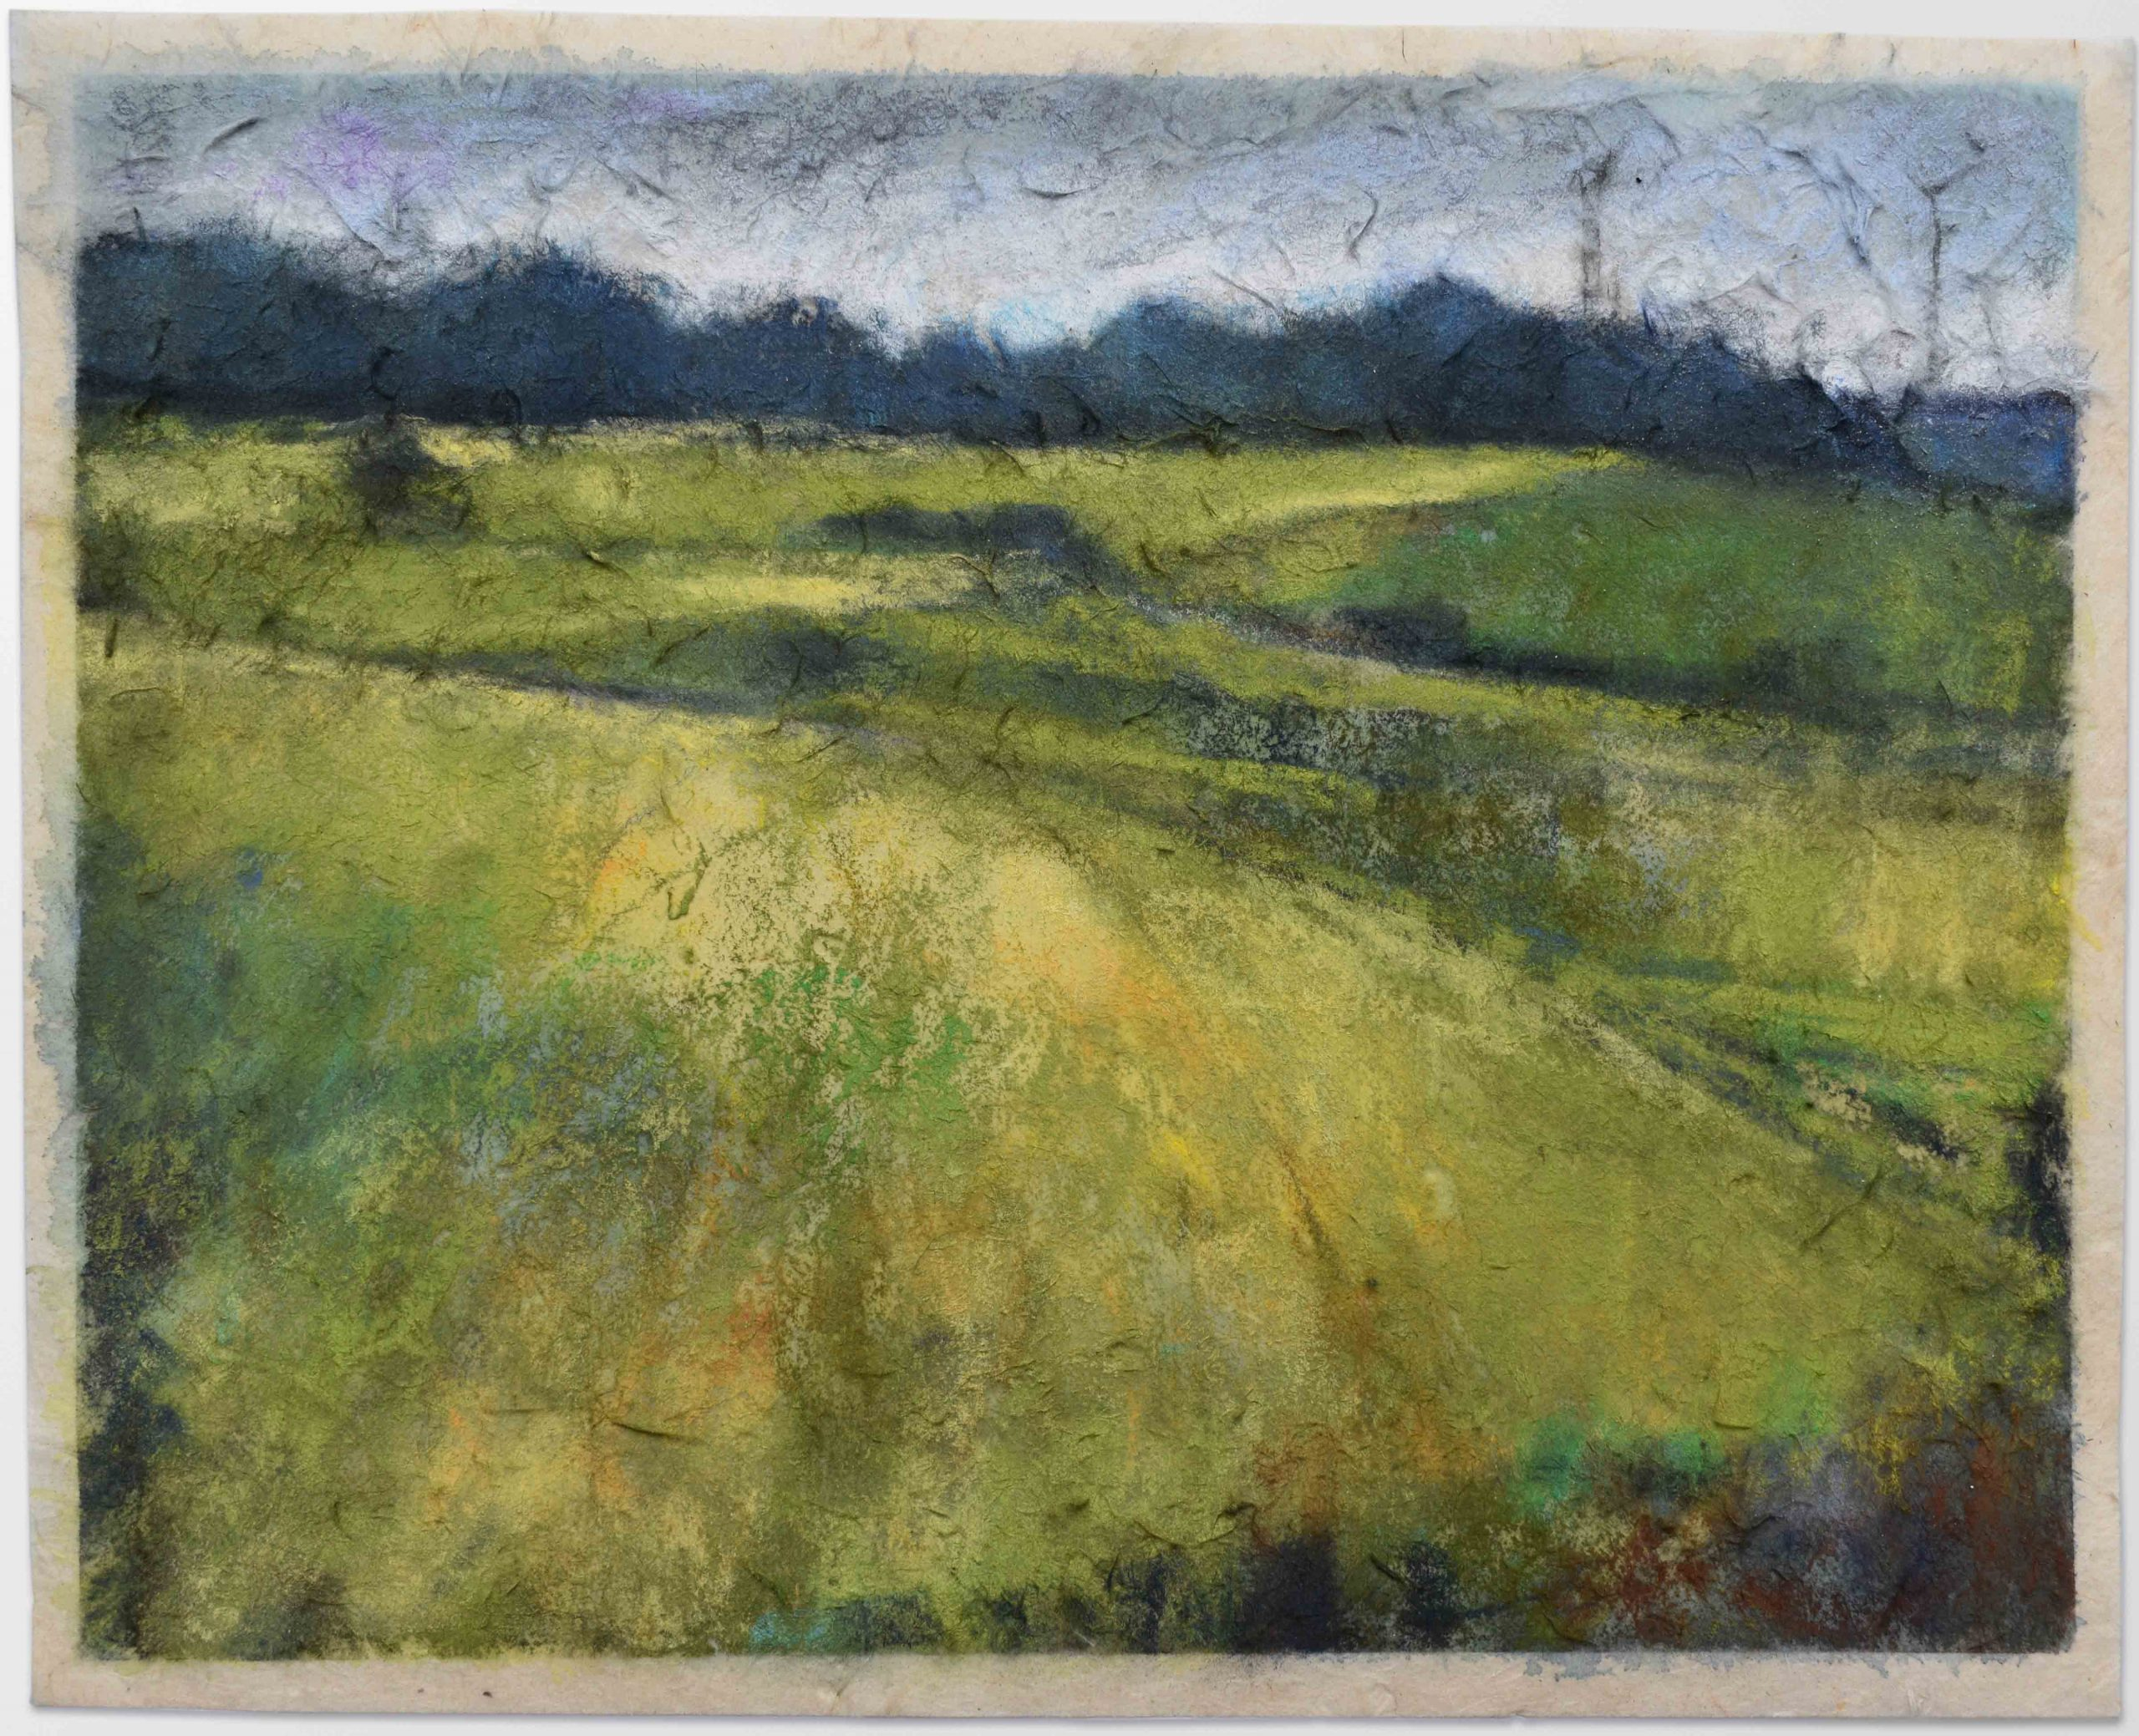 mixed media painting of moors and fields with wind turbines in the distance